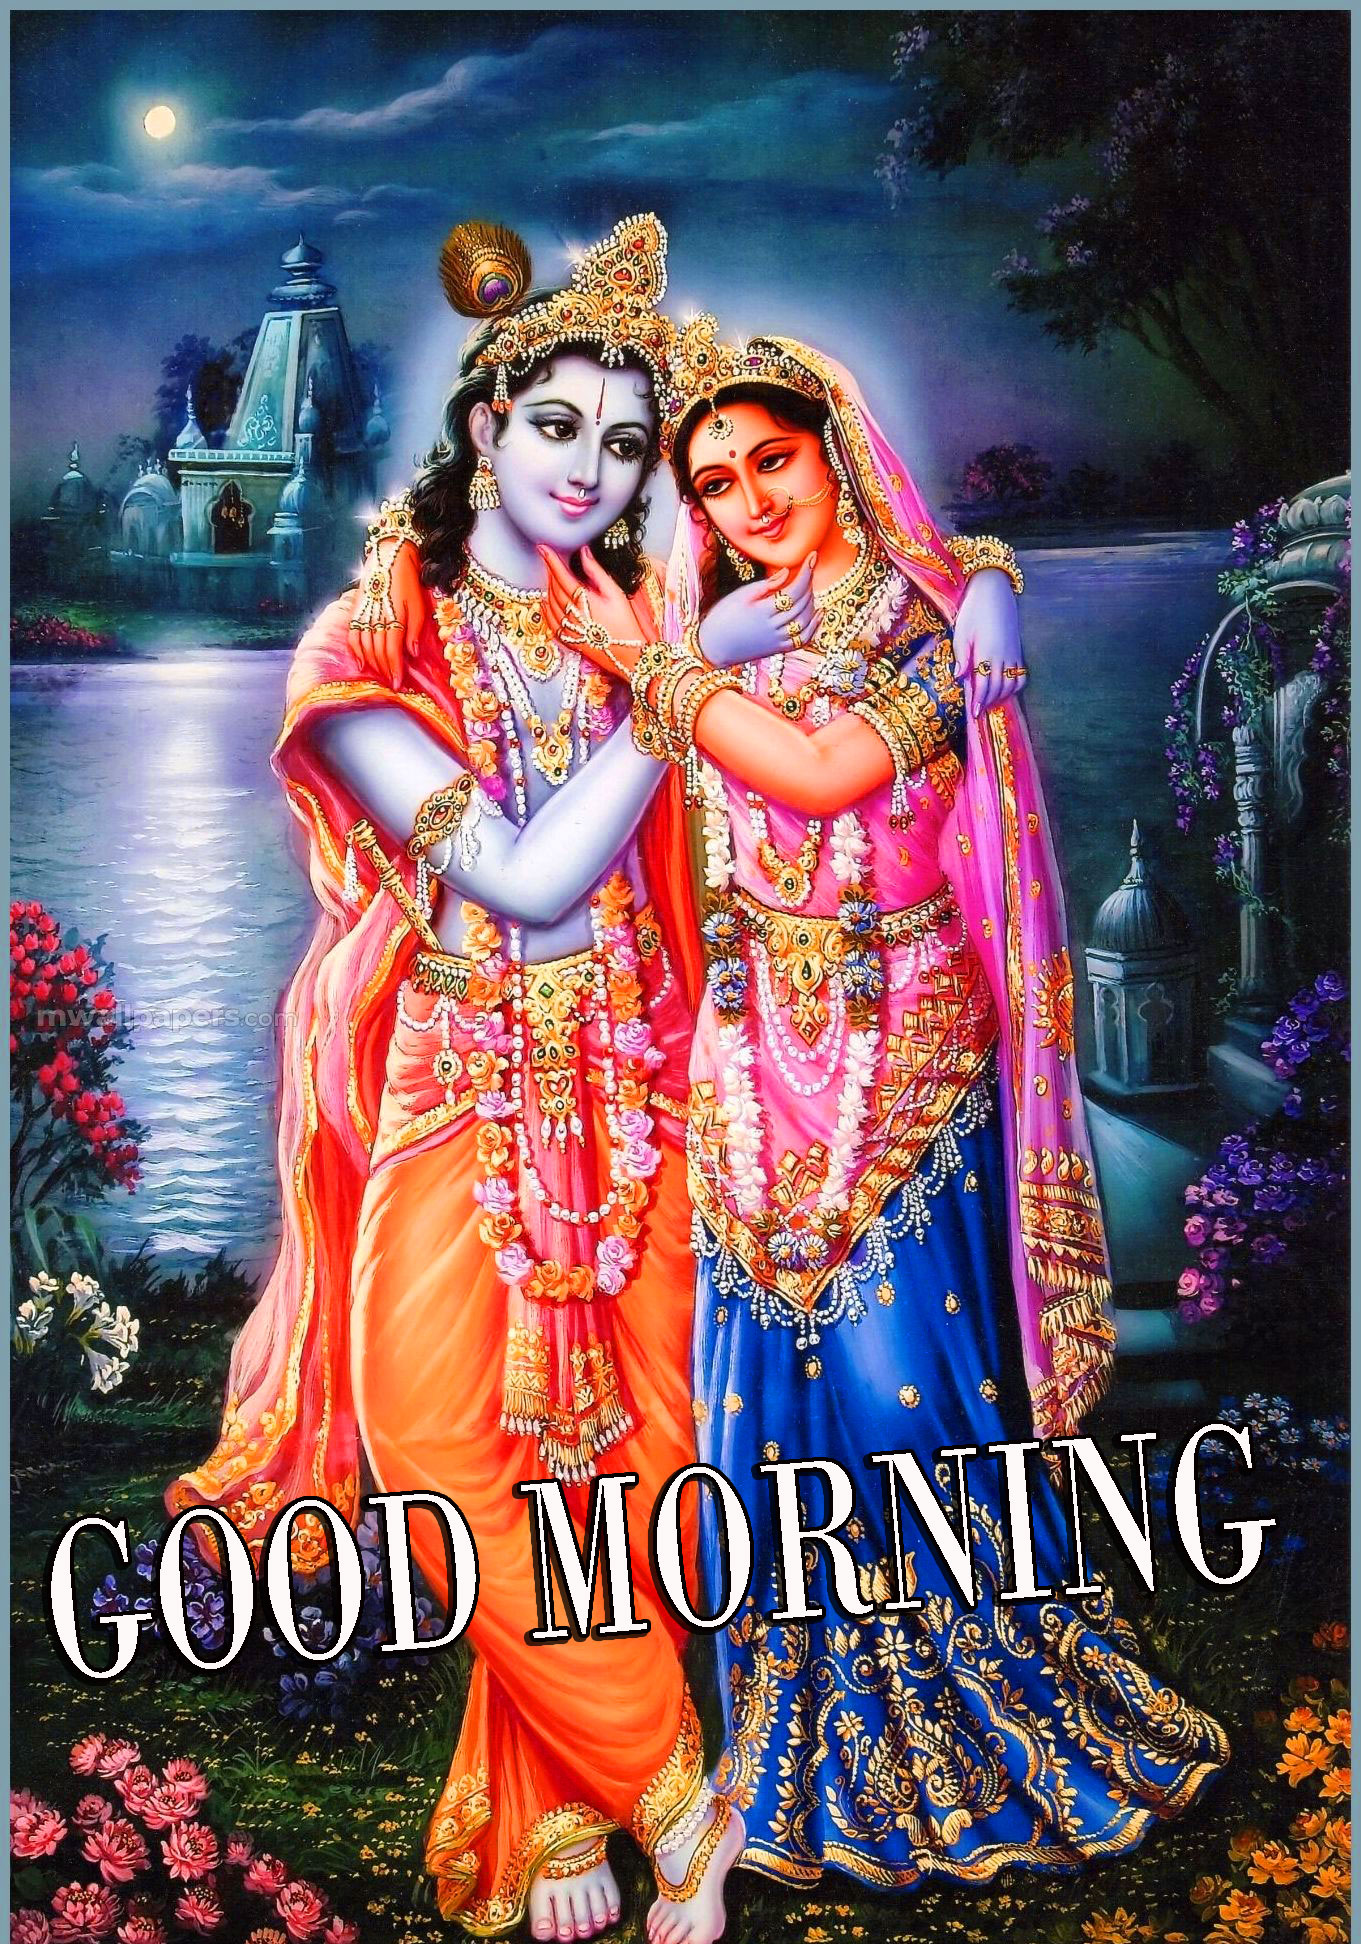 Radha Krishna Images With Love Hindi Quotes Good morning Photo Pictures Wallpaper Free HD